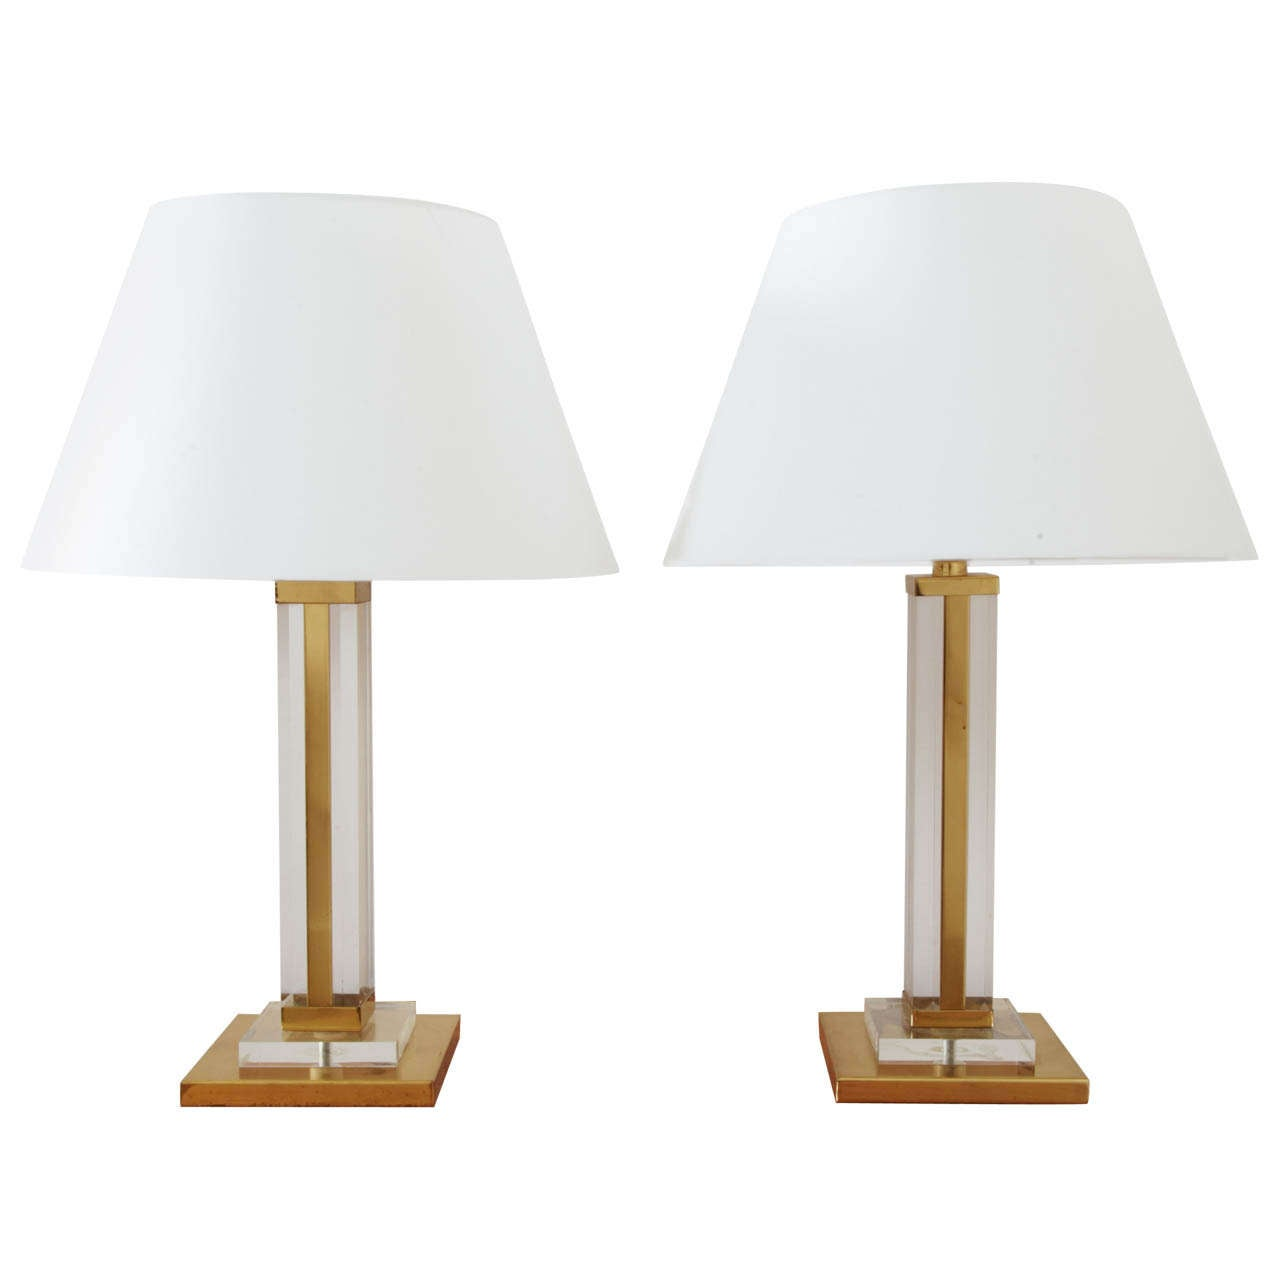 Pair Of Gilt Brass And Lucite Square Table Lamps, France 1970's